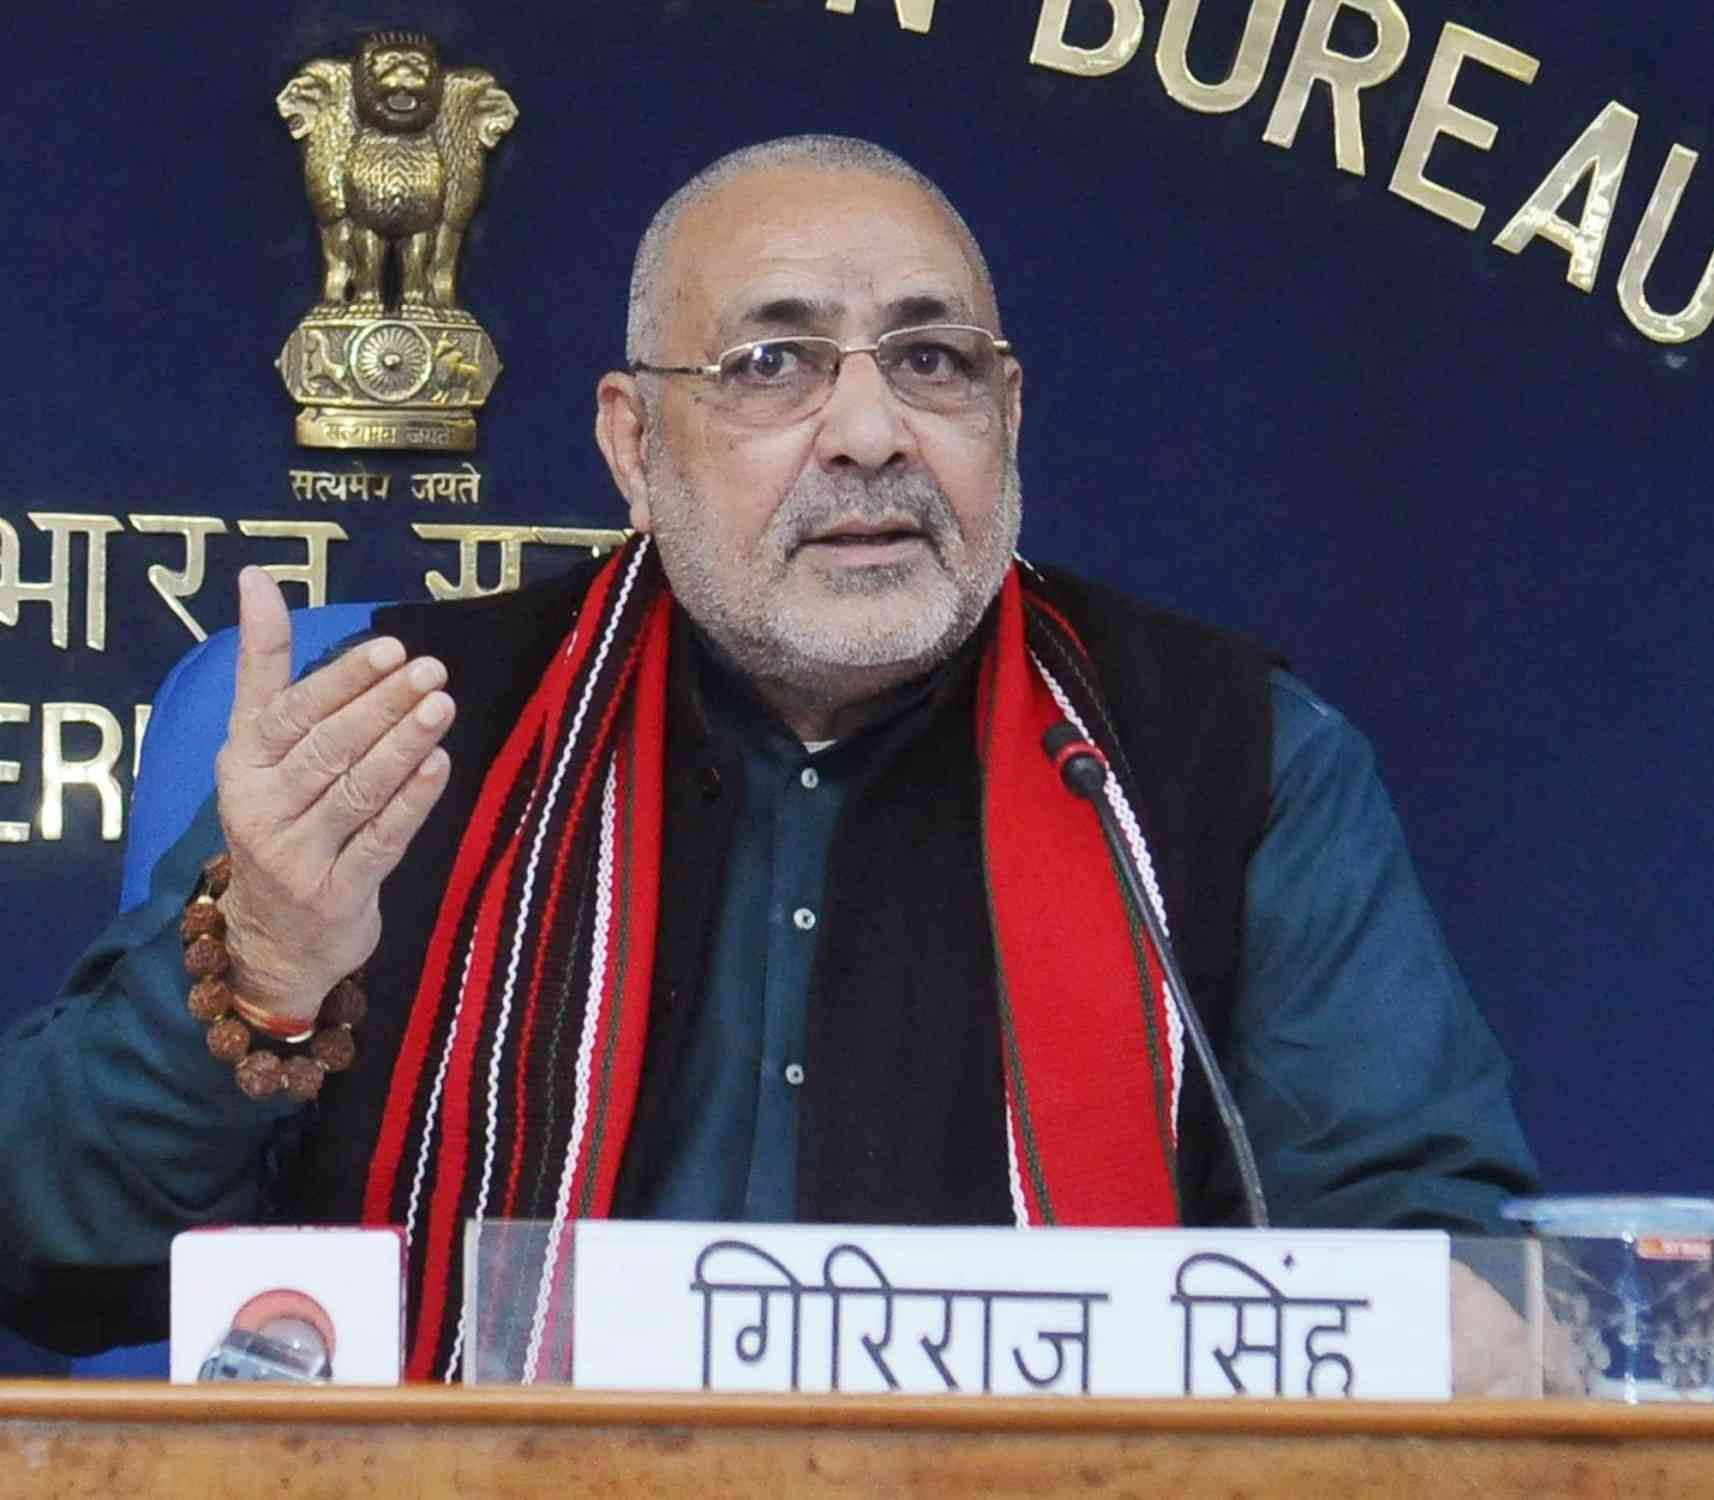 Giriraj Singh is set to defeat the Communist Party of India's Kanhaiya Kumar. Photo credit: IANS